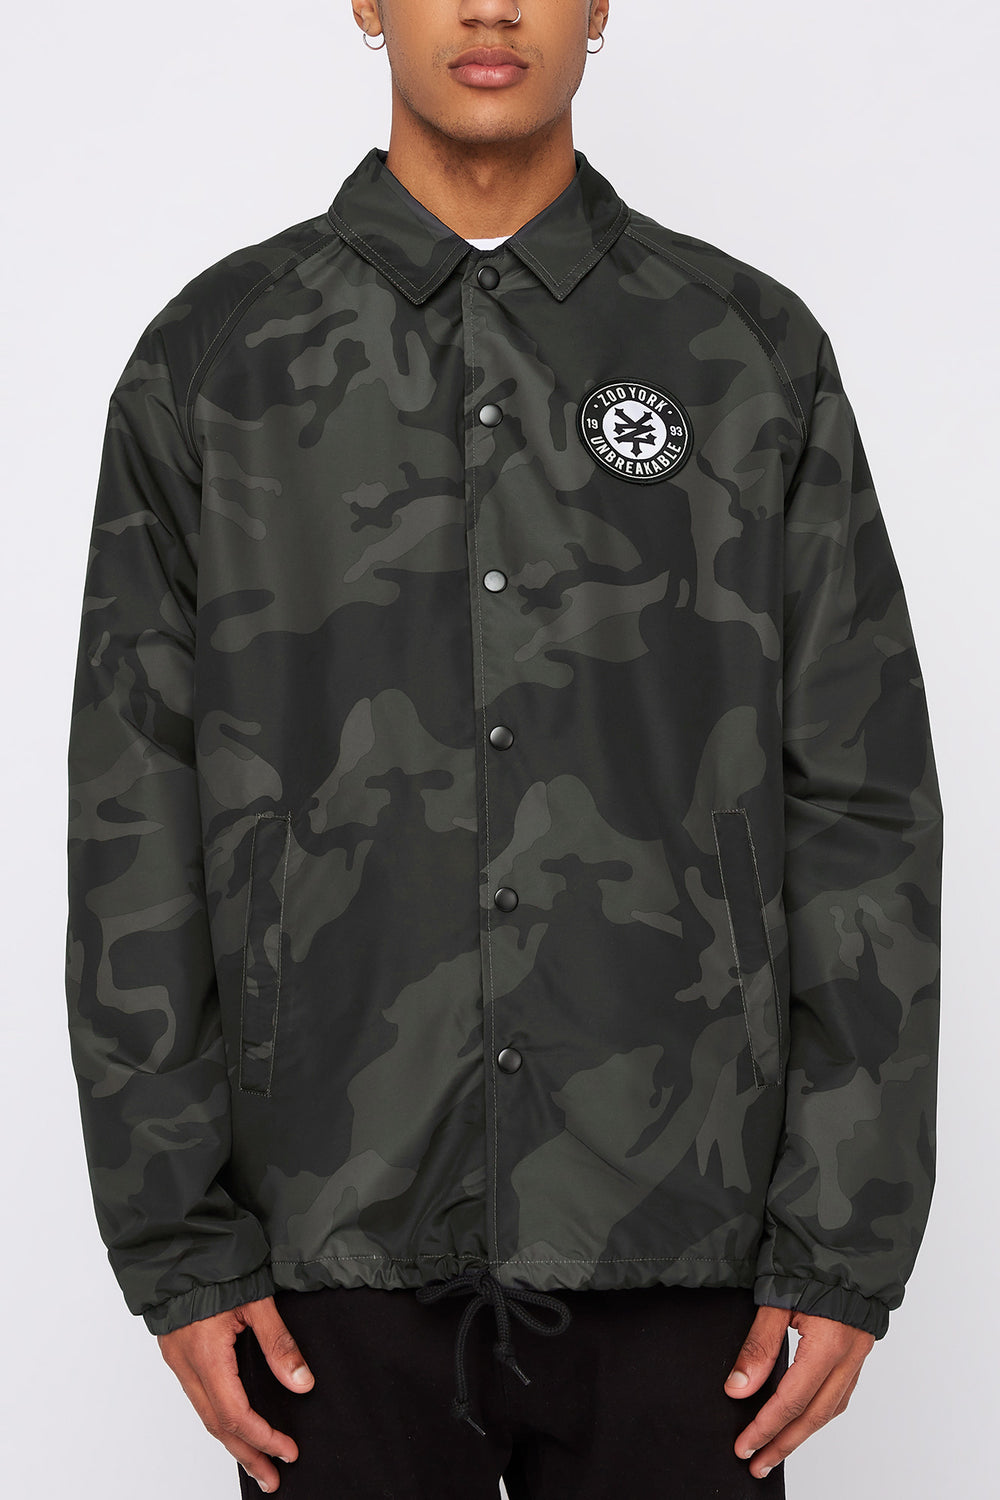 Zoo York Mens Patch Logo Coach Jacket Black with White